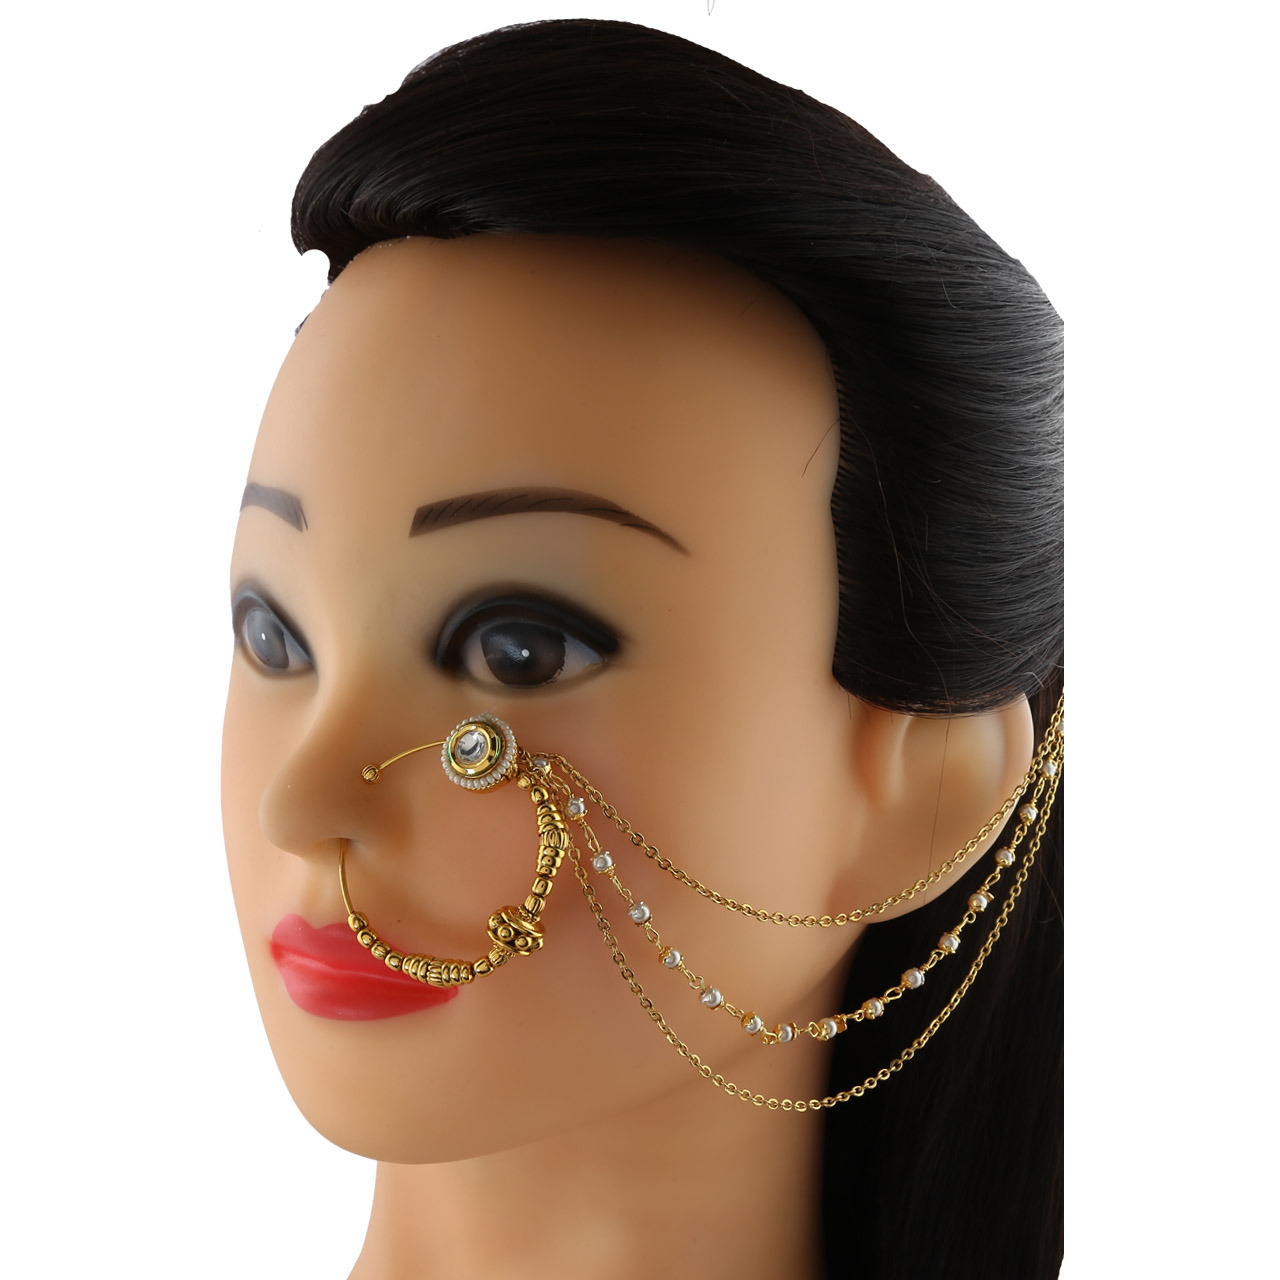 Anuradha Art Golden Finish Styled With Kundan Designer Very Trendy Traditional Dulhan Nose Ring Nose Pin For Women/Girls